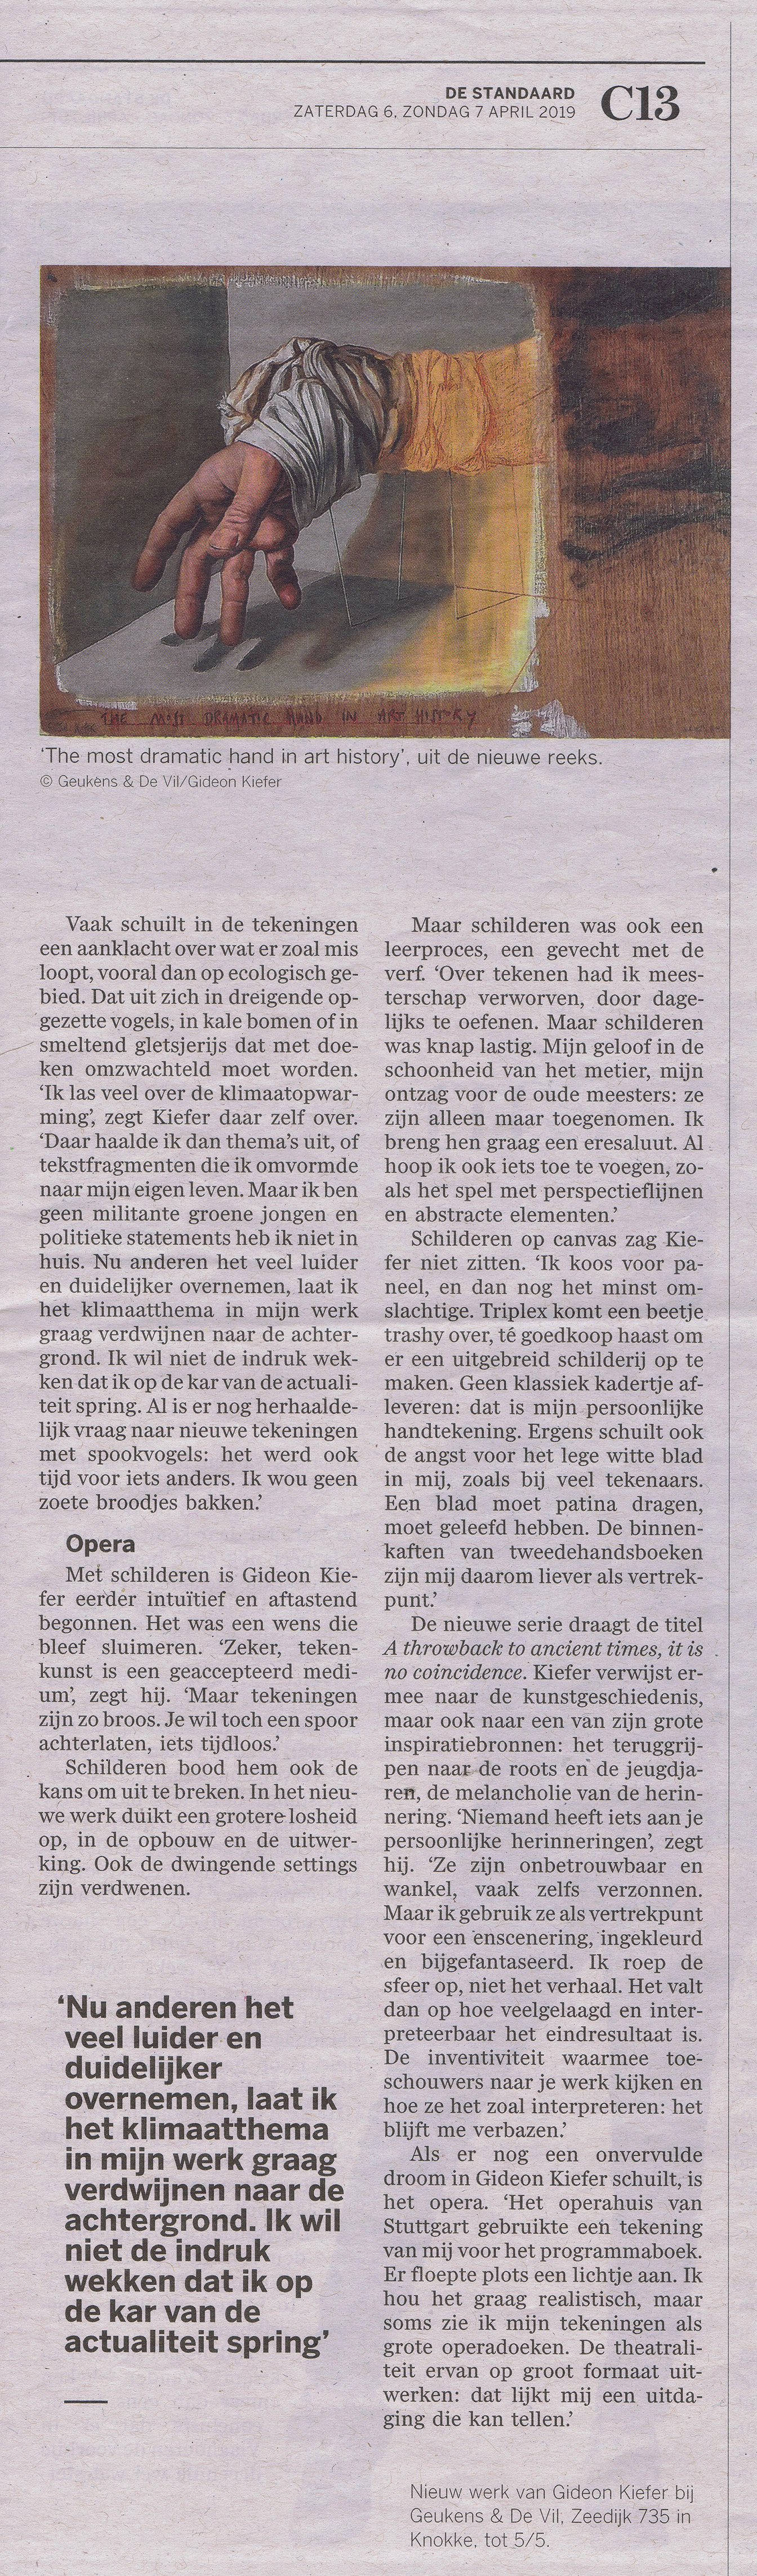 De_Standaard_A_Throwback_to_Ancient_Times_Artikel_002.jpg